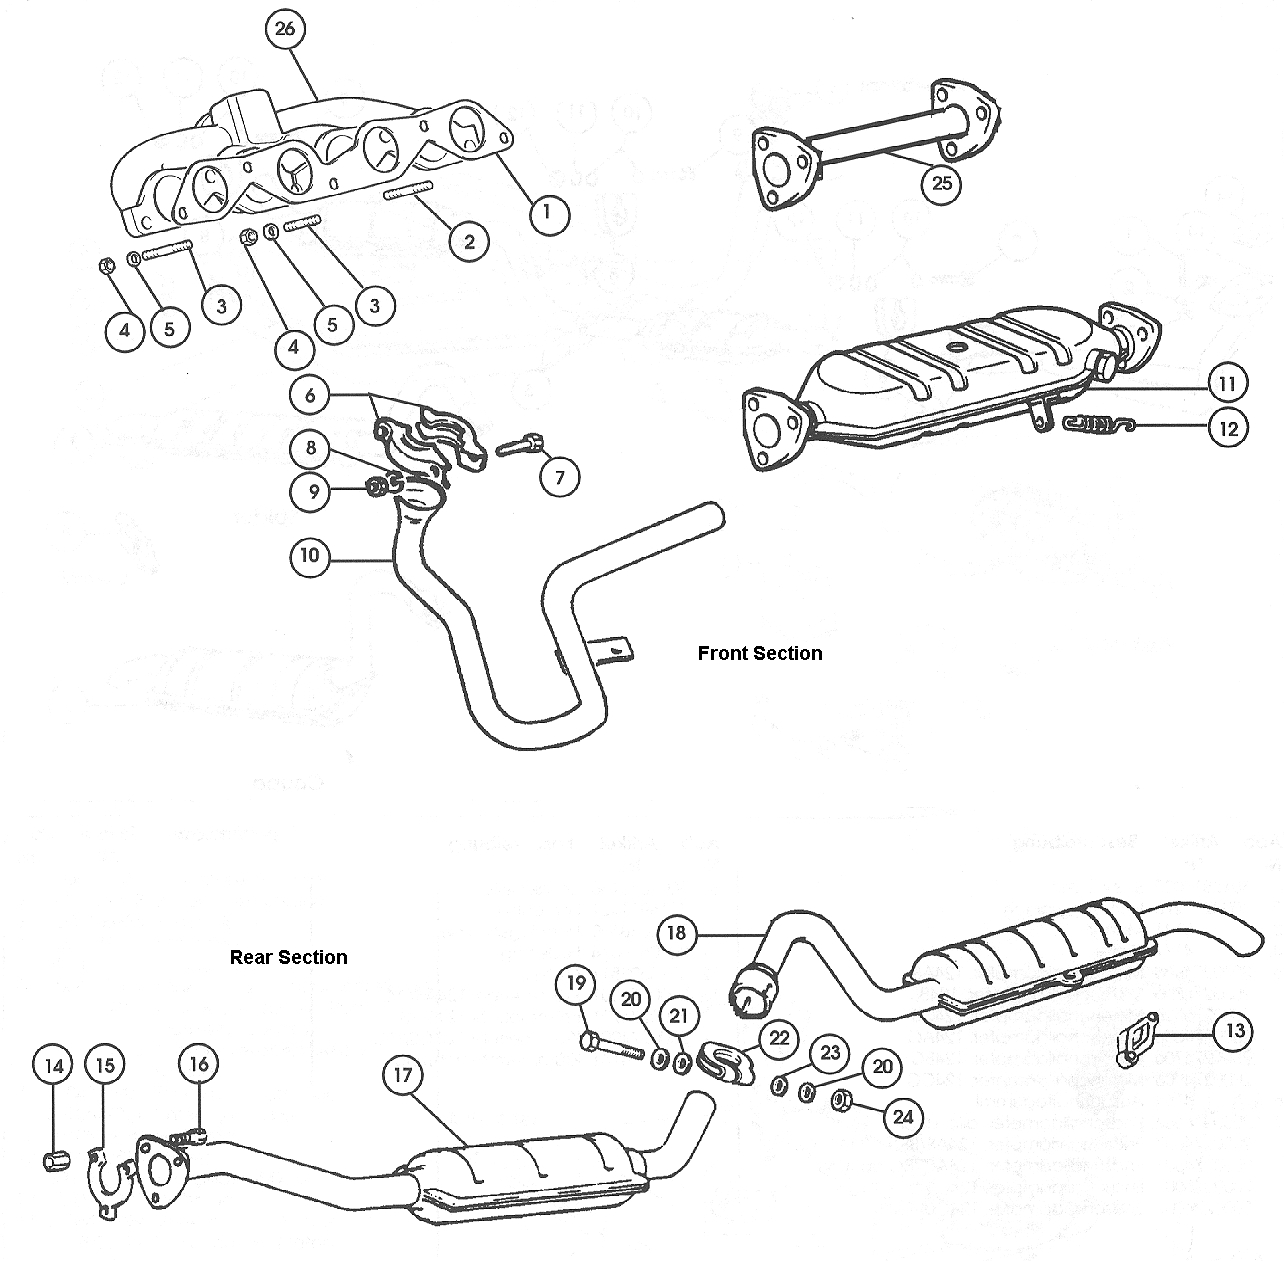 Exhaust System – All 1976-78, 1975 Calif.